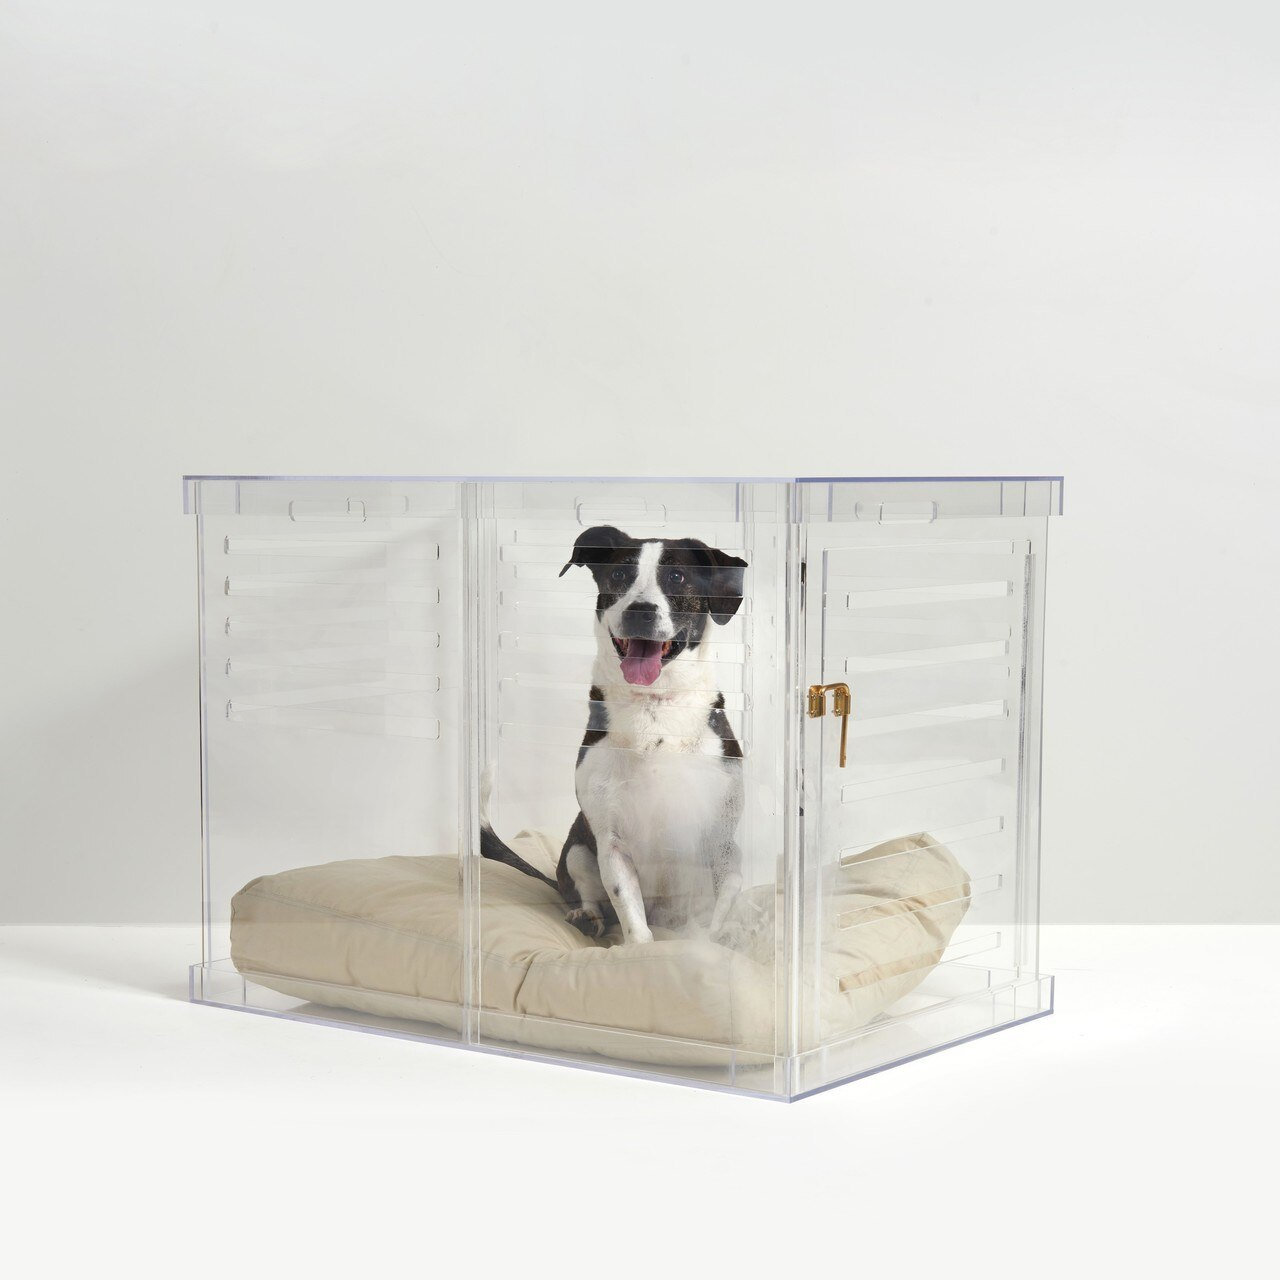 crate-bingo-large-gold-lock-haddie-laughing-square-clear-acrylic-modern-lucite-pet-dog-crate.jpg